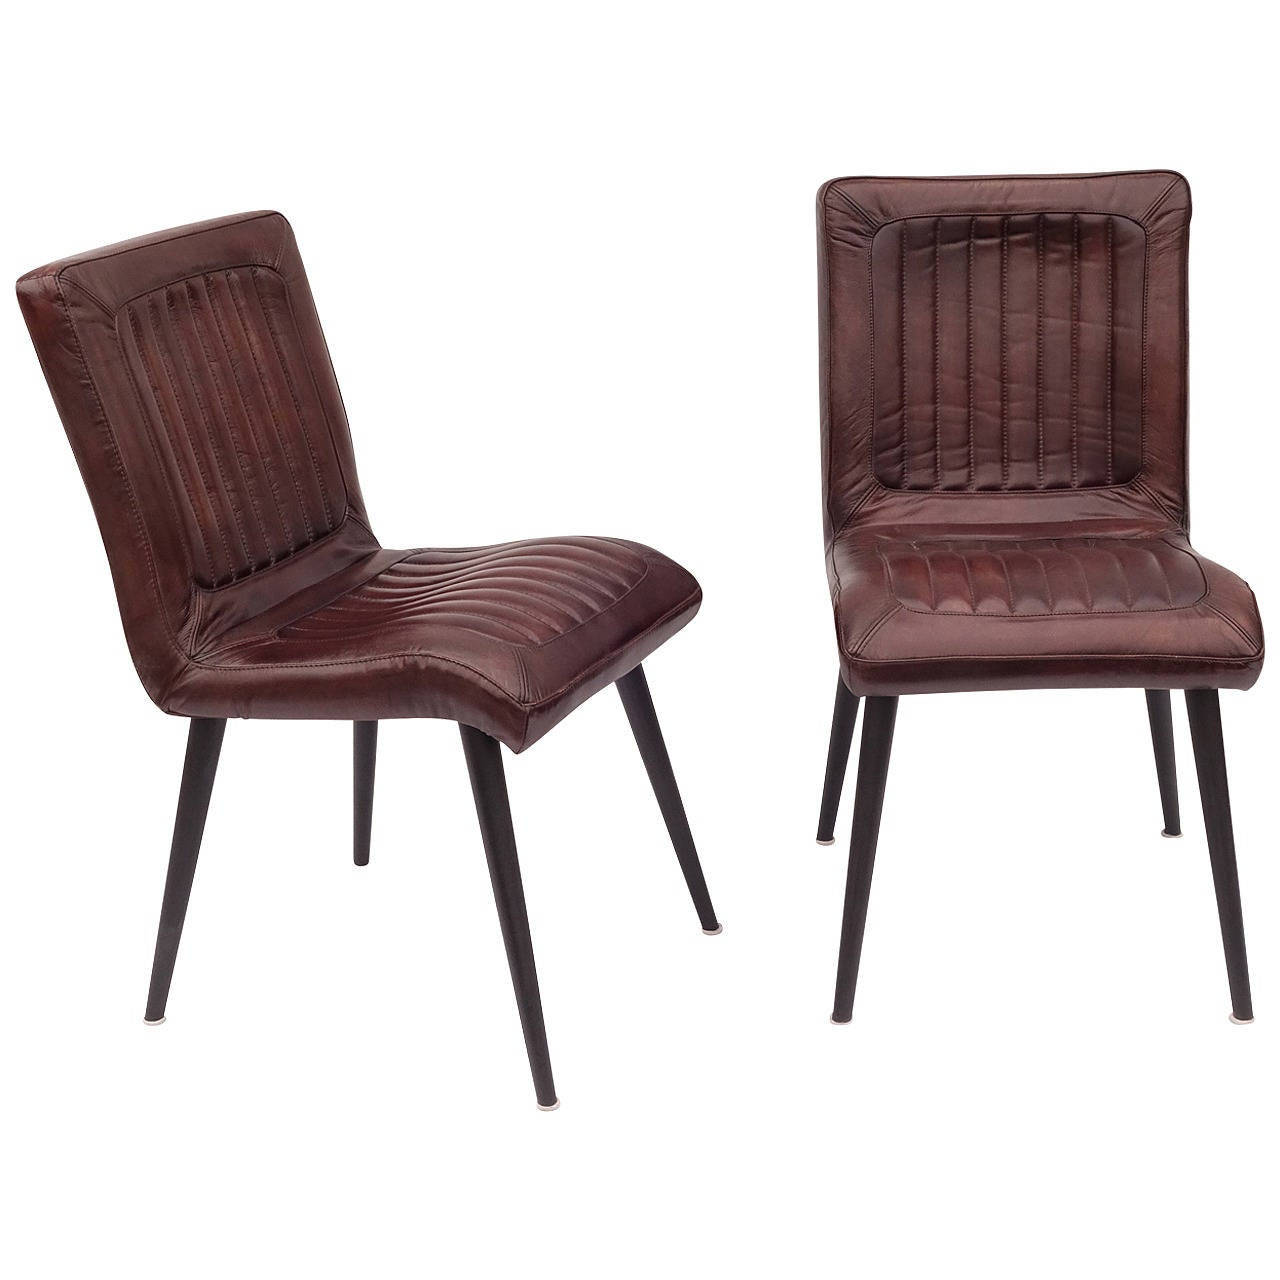 Leather upholstered dining chairs for sale at 1stdibs for Leather kitchen chairs for sale